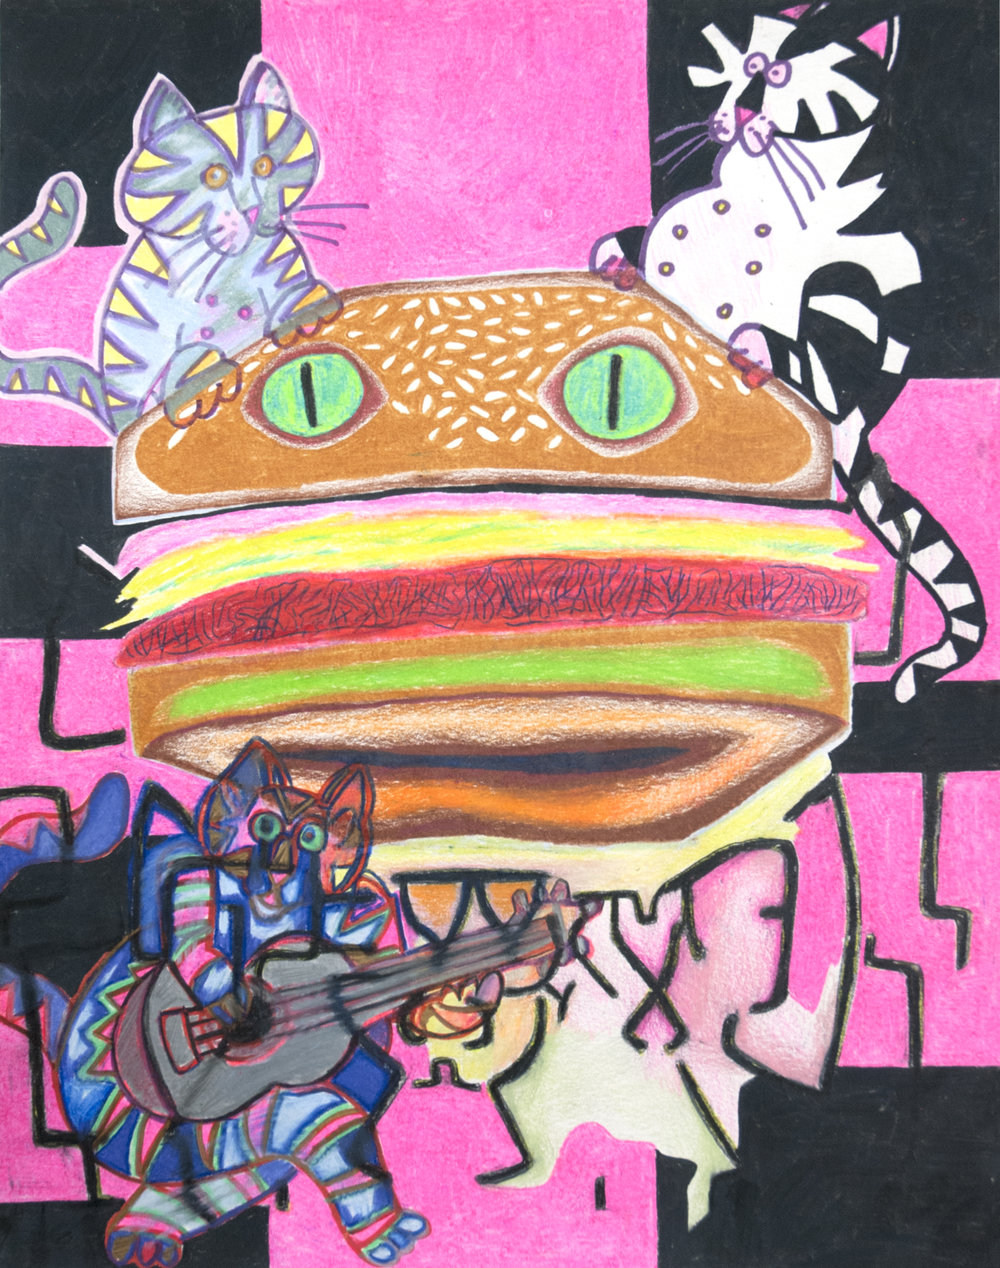 Pussy Burger for Chris Martin